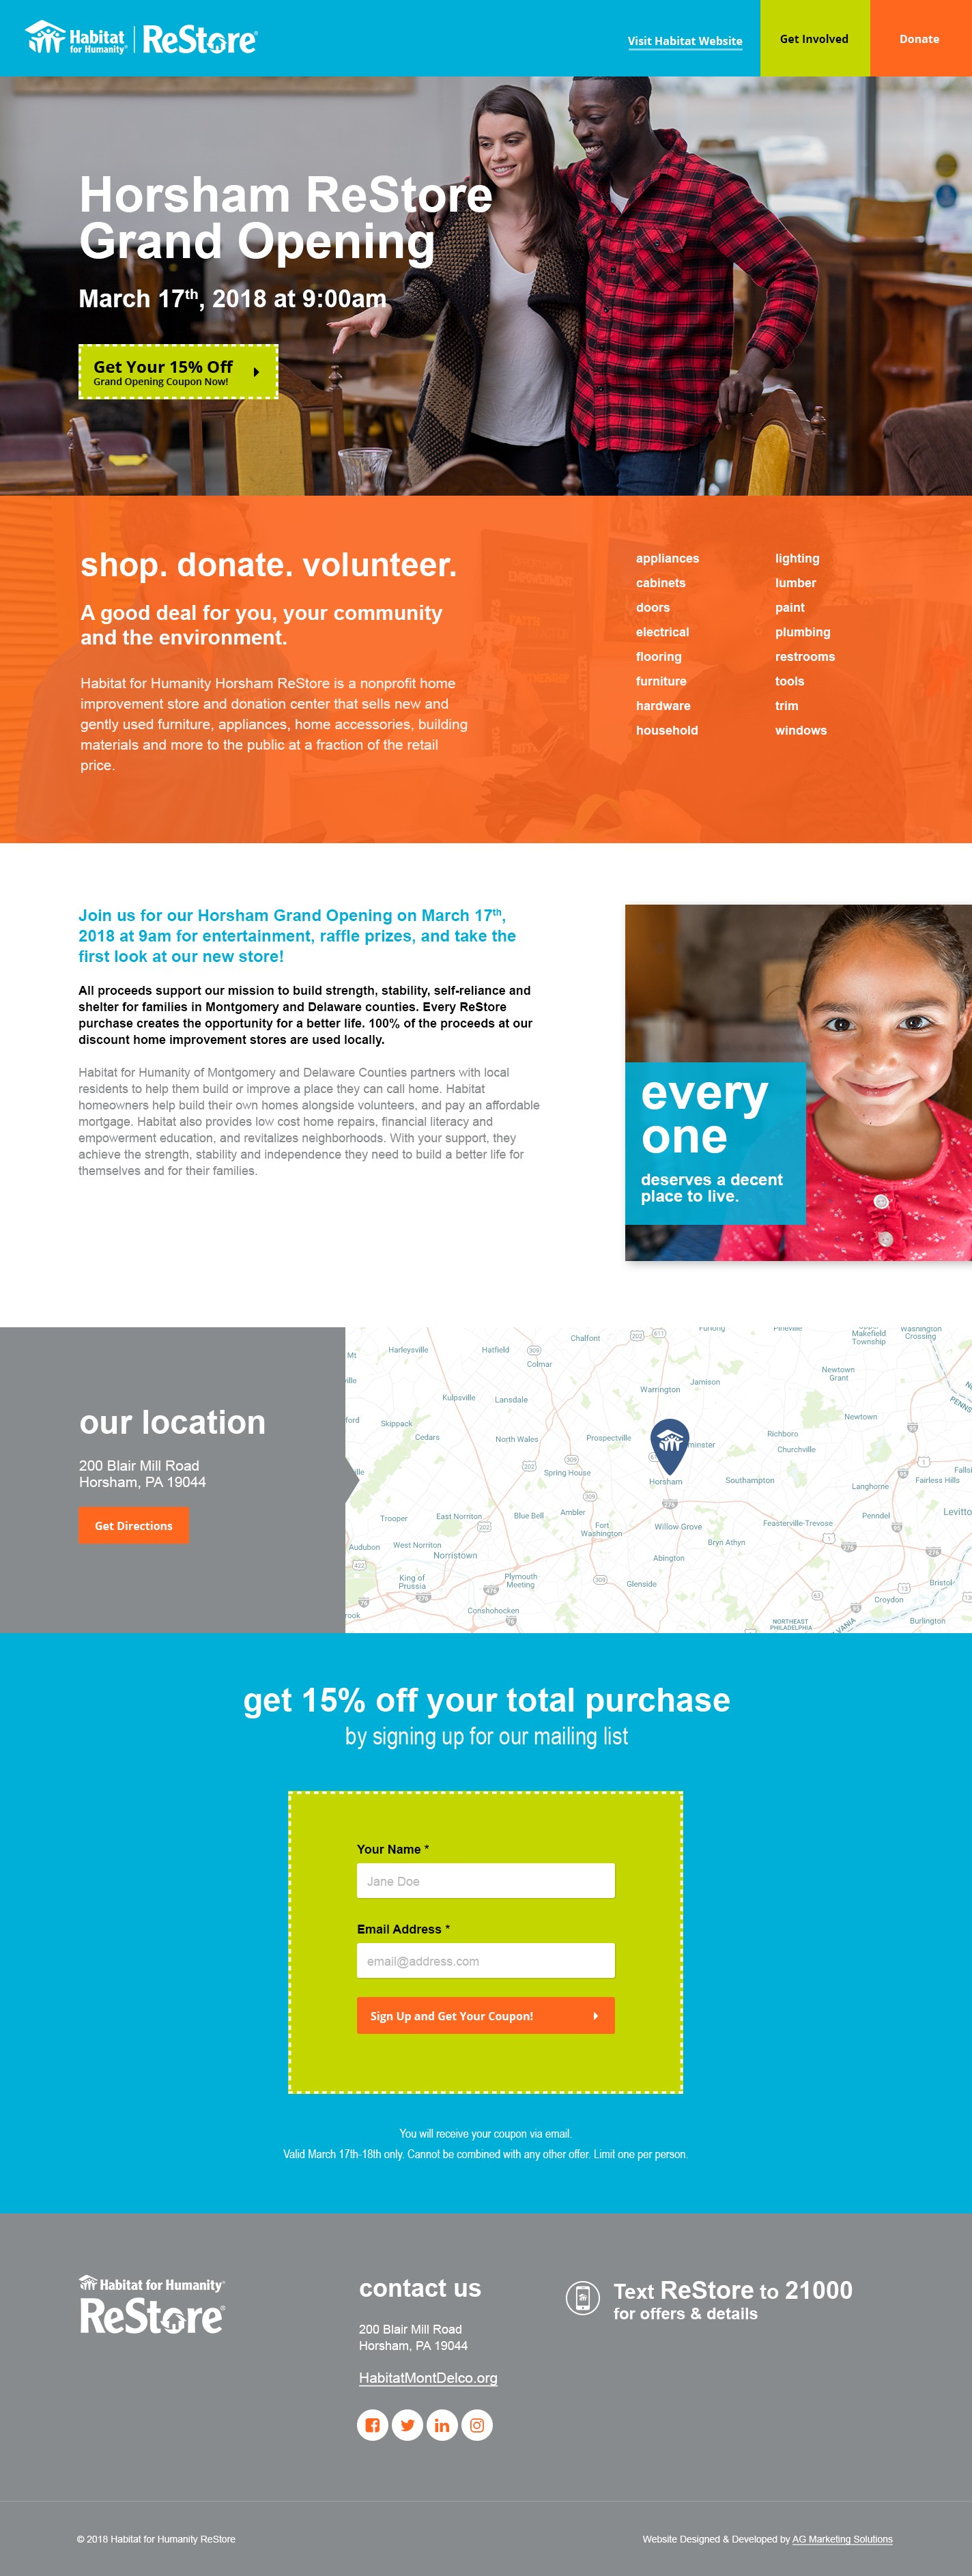 Habitat for Humanity responsive website design on a laptop